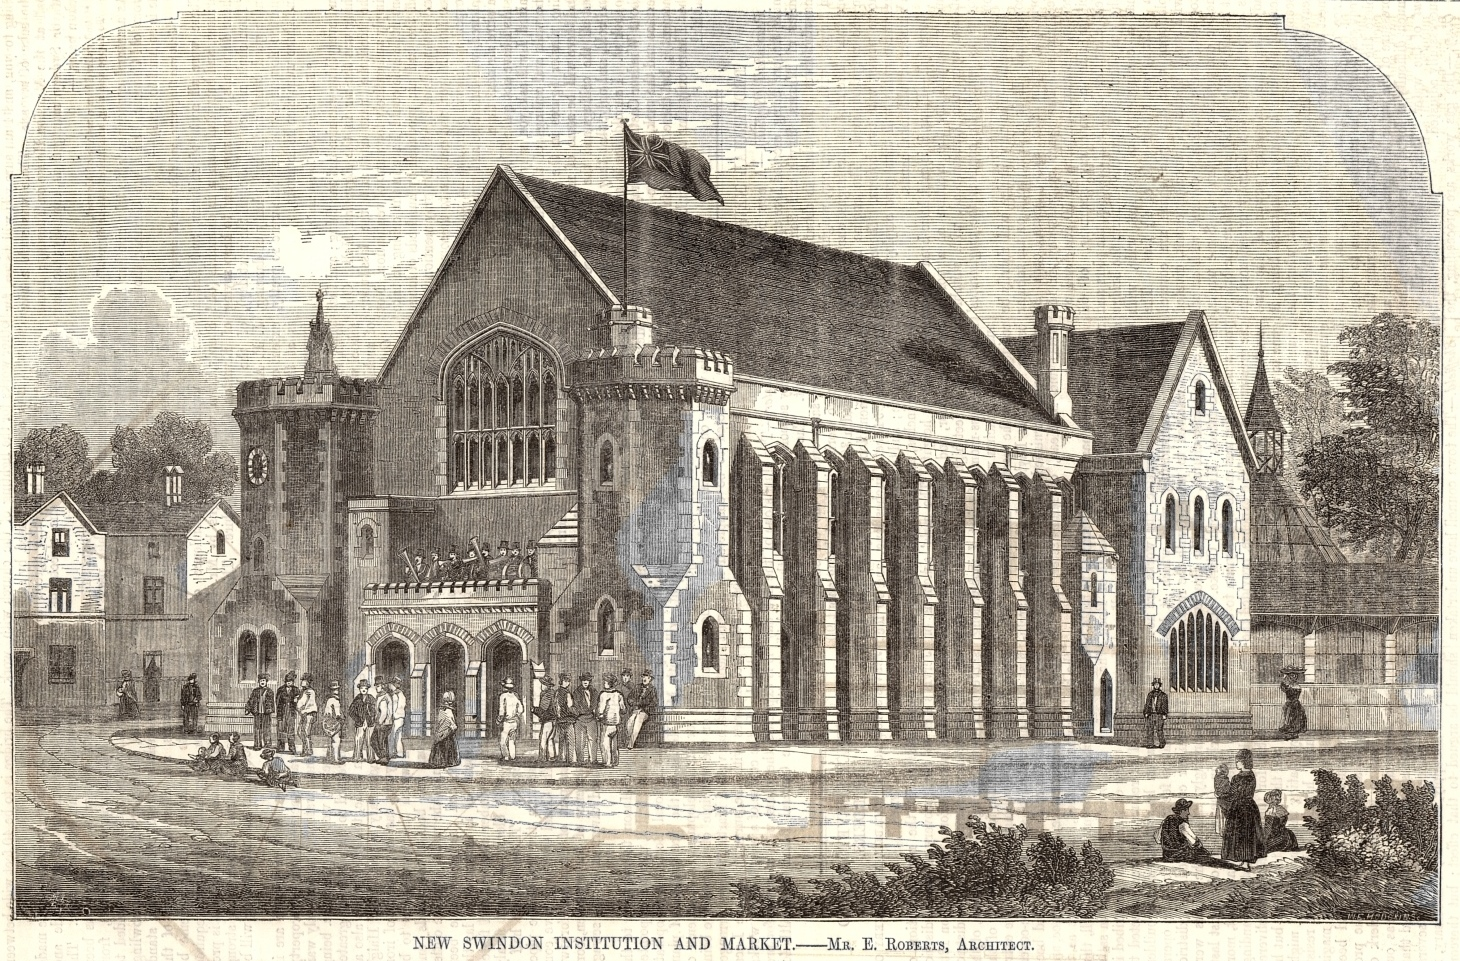 Mechanics' Institution and Market, architects' drawing, 1854 - Provided by Swindon Local Studies https://www.flickr.com/photos